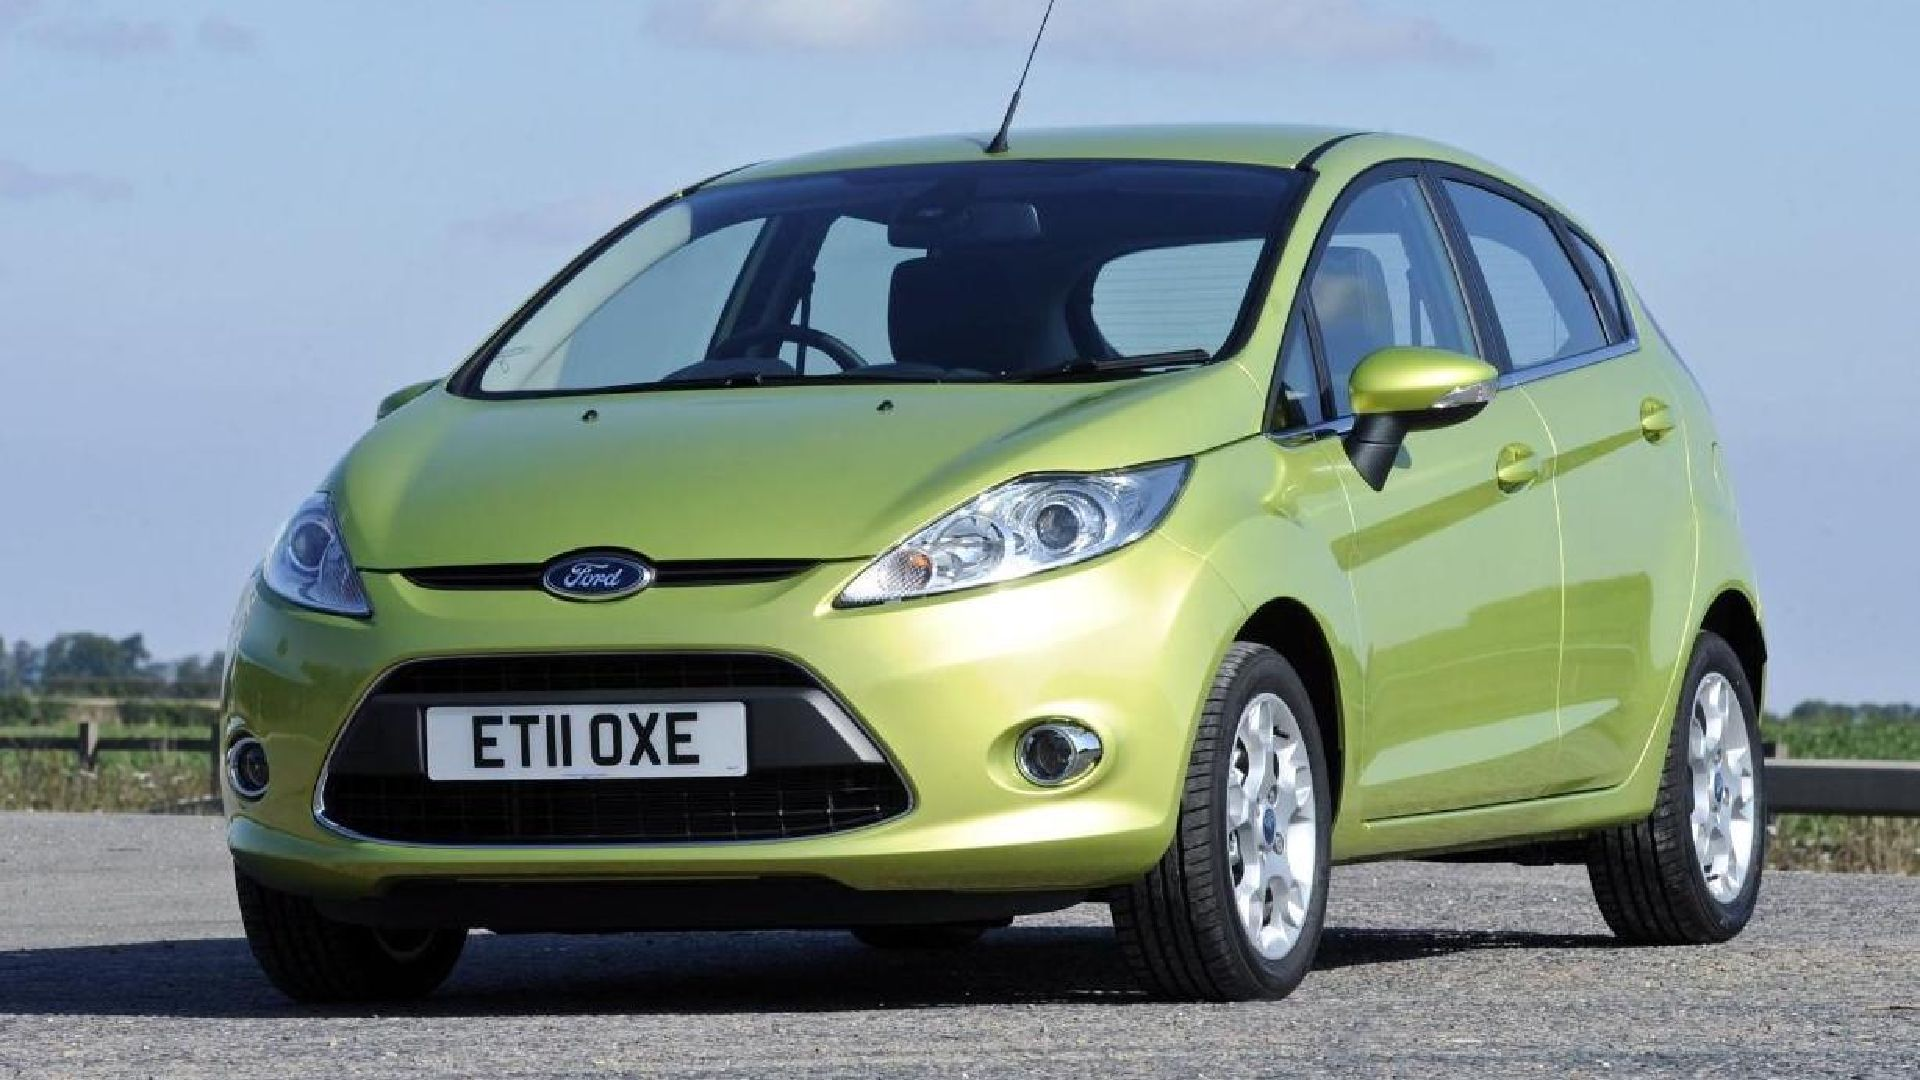 Pandemic causes demand for cheap small cars to rise